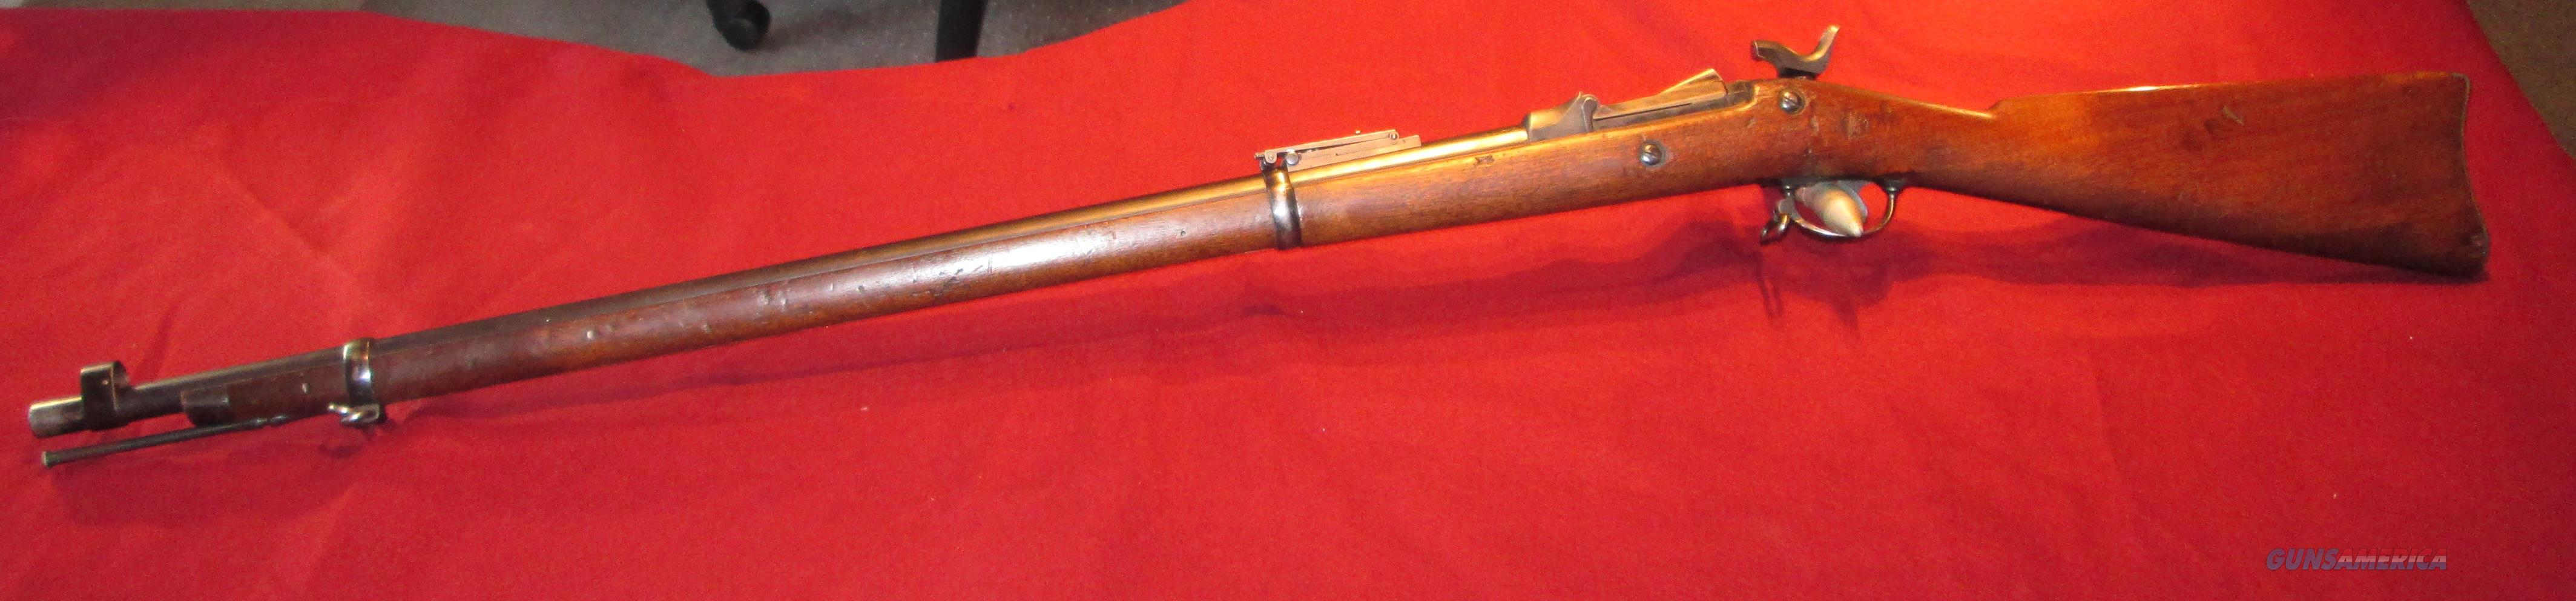 "Springfield Model 1884 Rifle ""Trapdoor"" - Pristine bore - Buffington Sight  Guns > Rifles > Military Misc. Rifles US > Pre-1900"